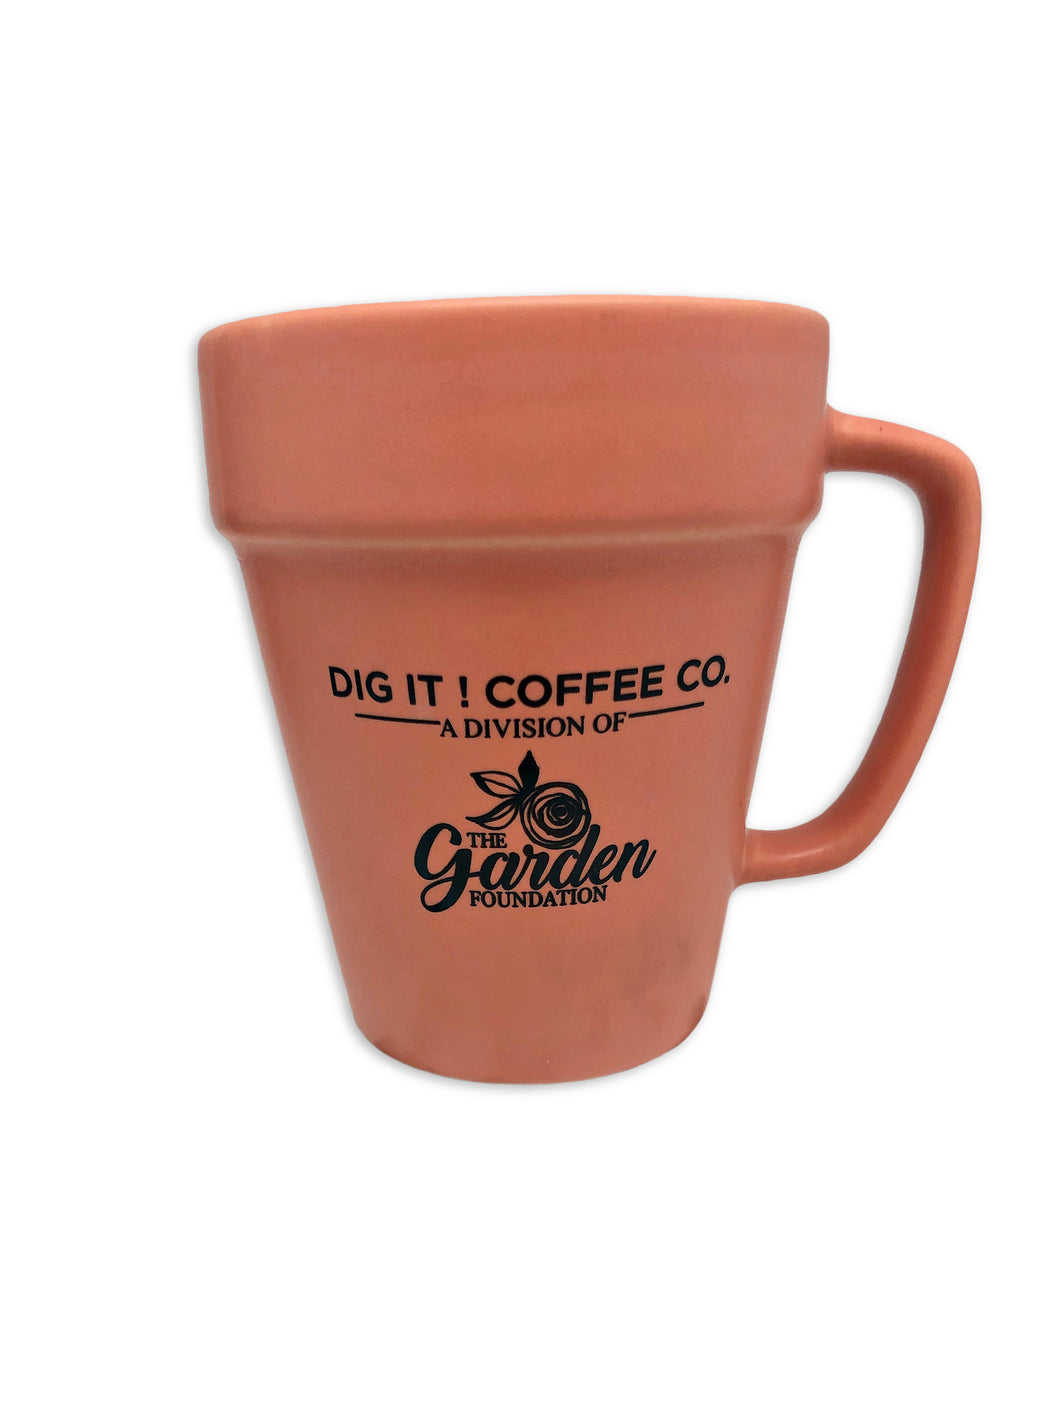 Dig It! Coffee Mug - The Garden Foundation